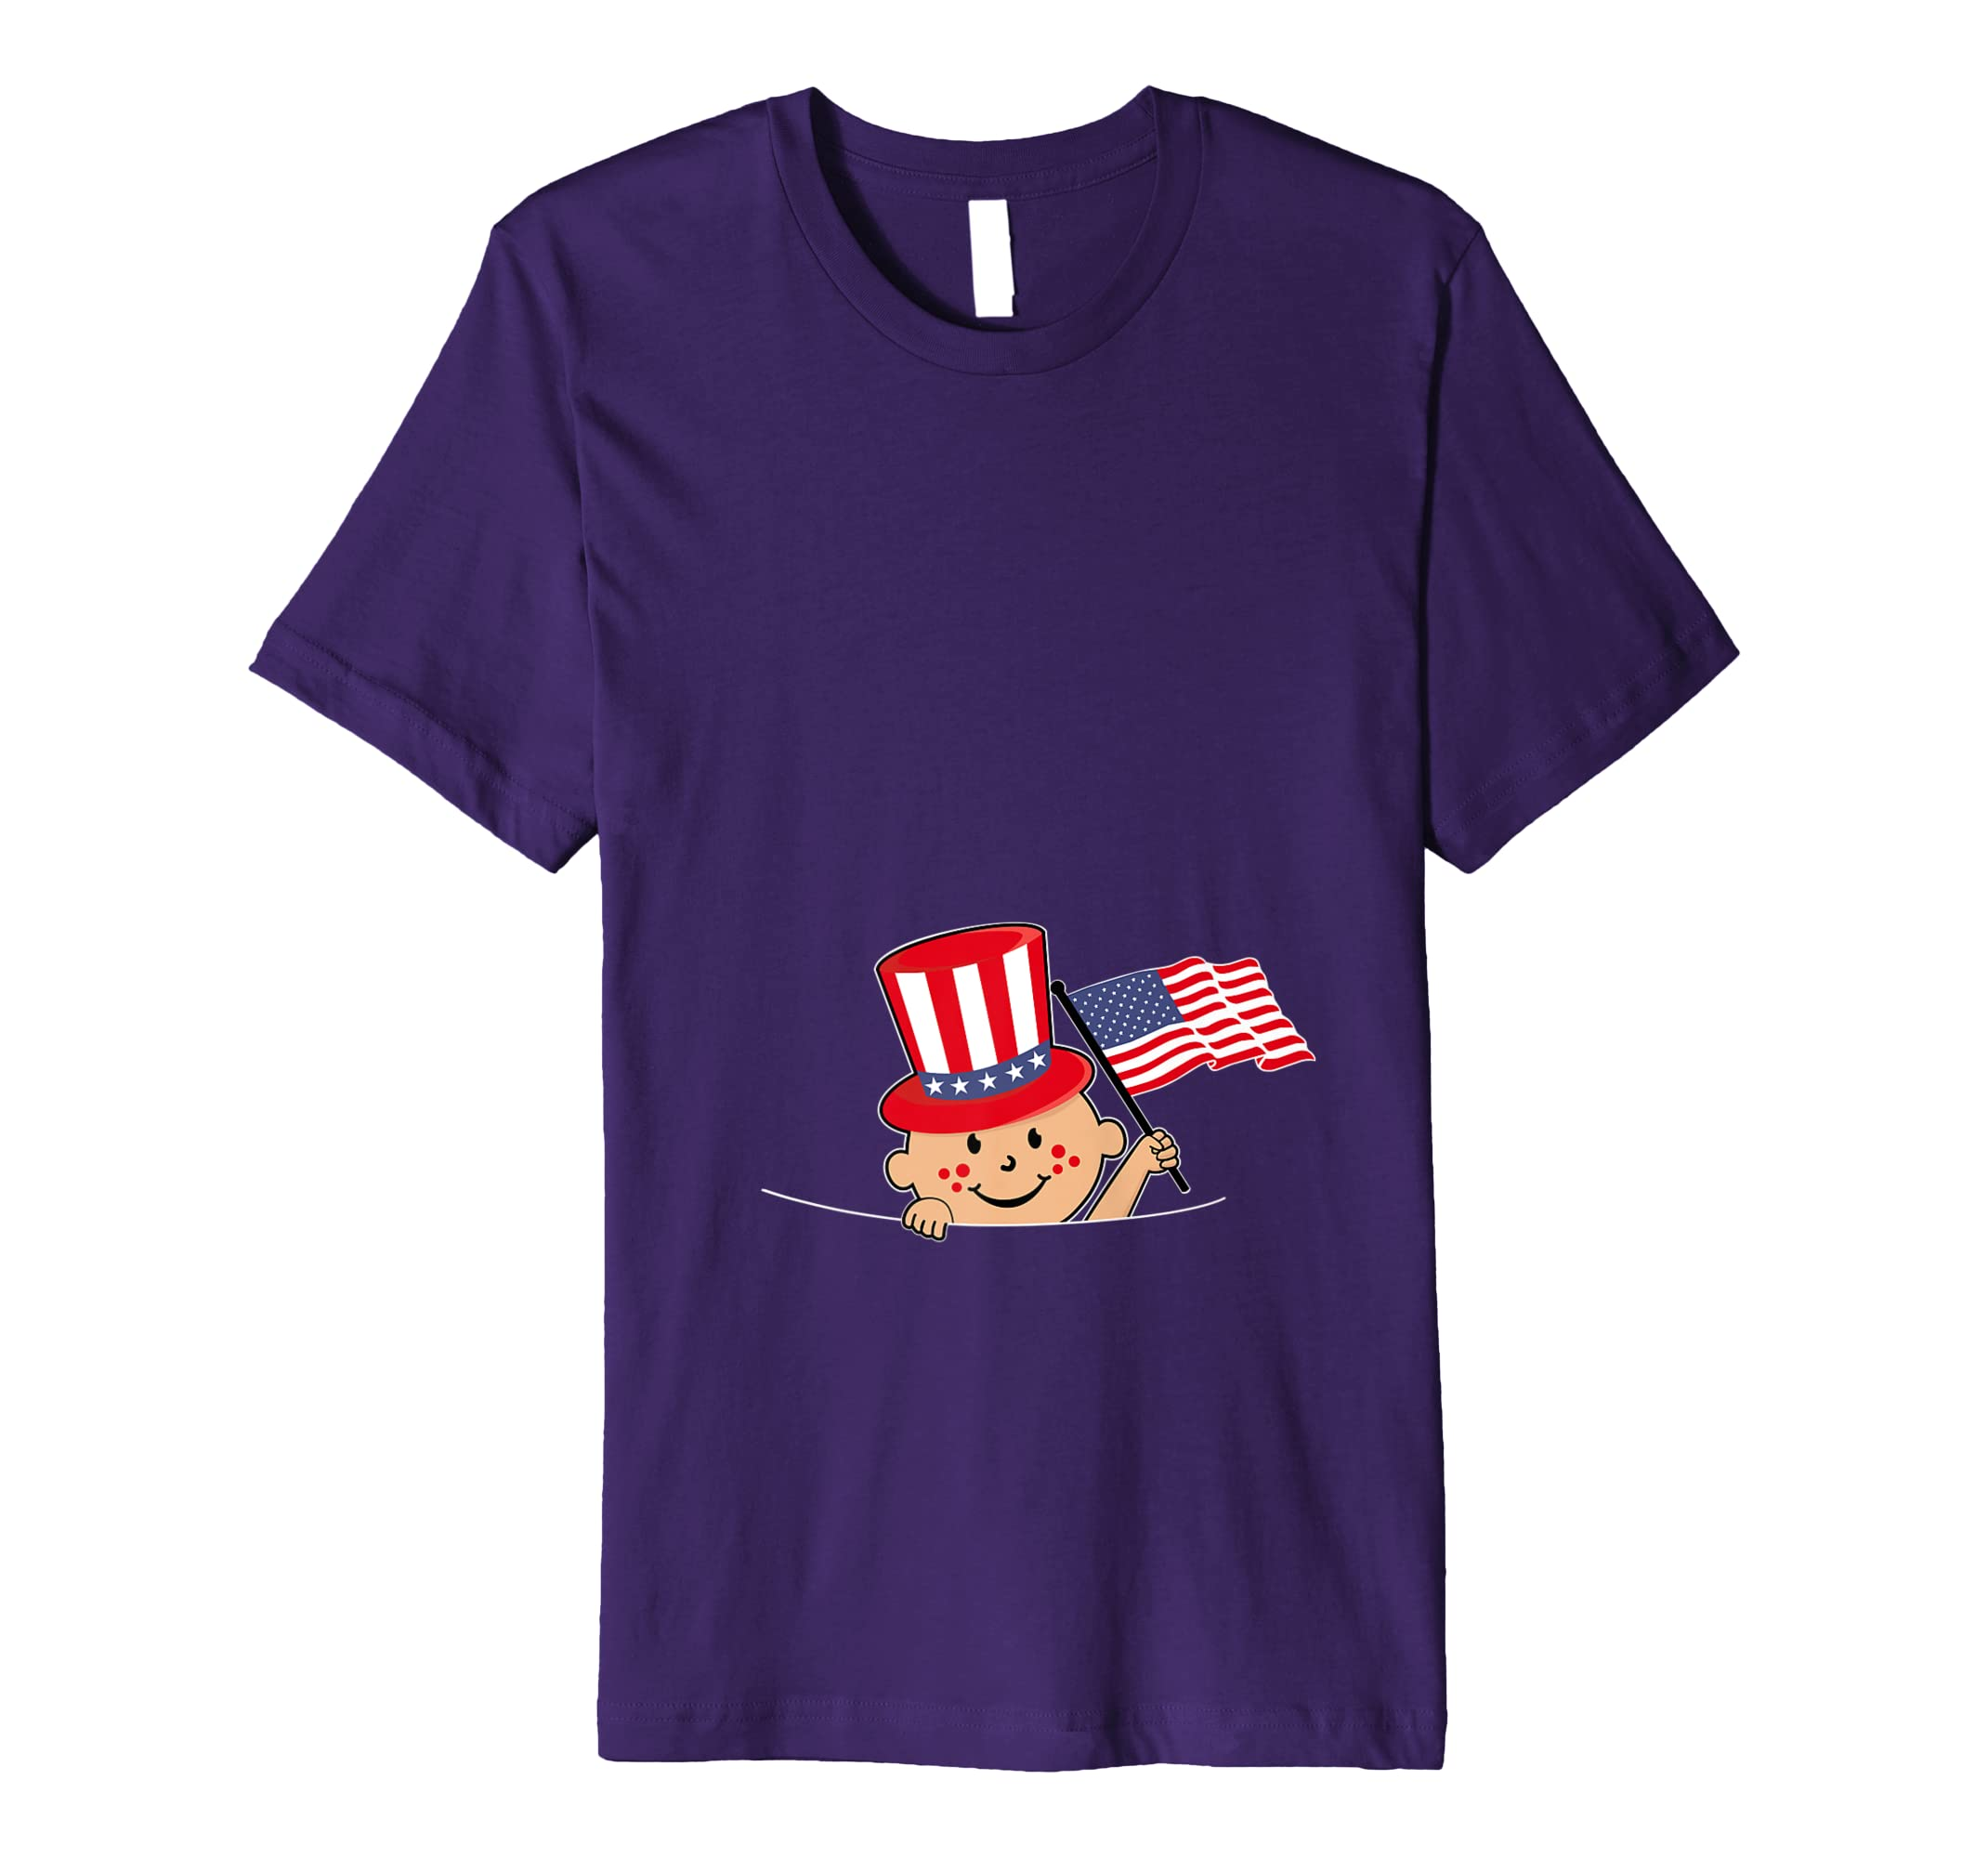 edd07886fe8cd Amazon.com: Funny Pregnancy Reveal T Shirt 4th of July Baby Announcement:  Clothing